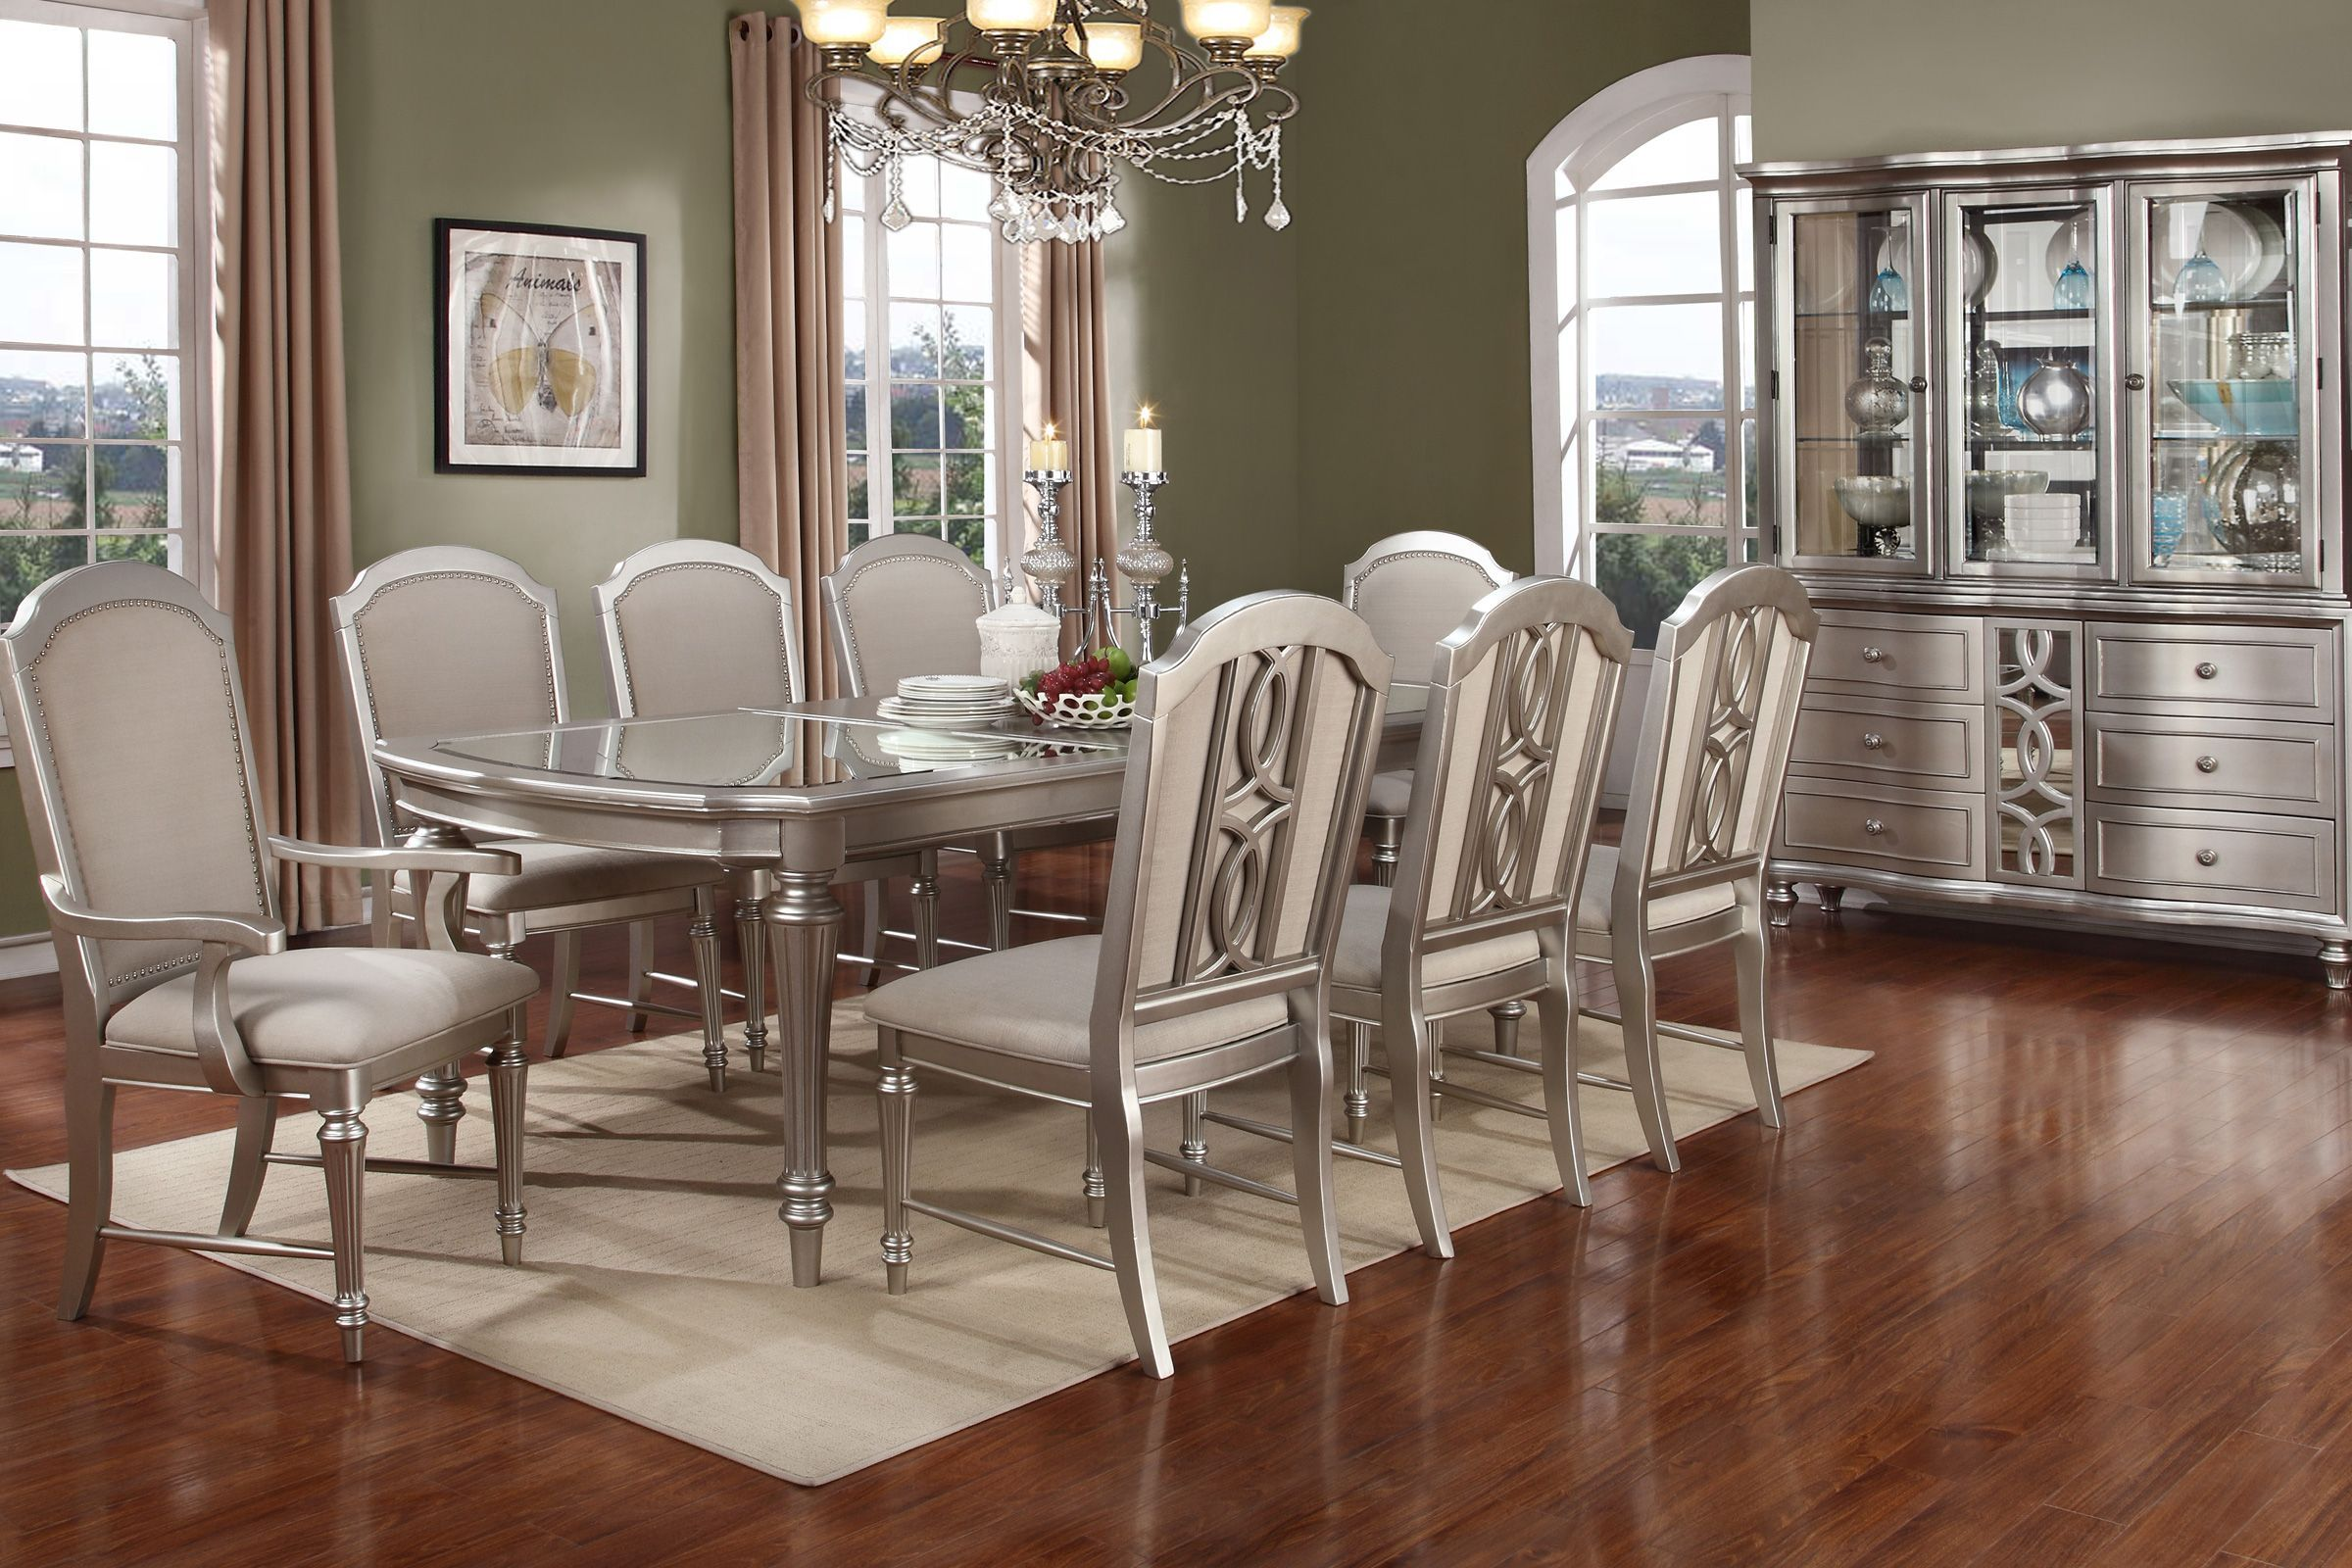 Colleen Dining Table 4 Dining Chairs 2 Arm Chairs Dining Table Legs Dining Chairs Dining Table